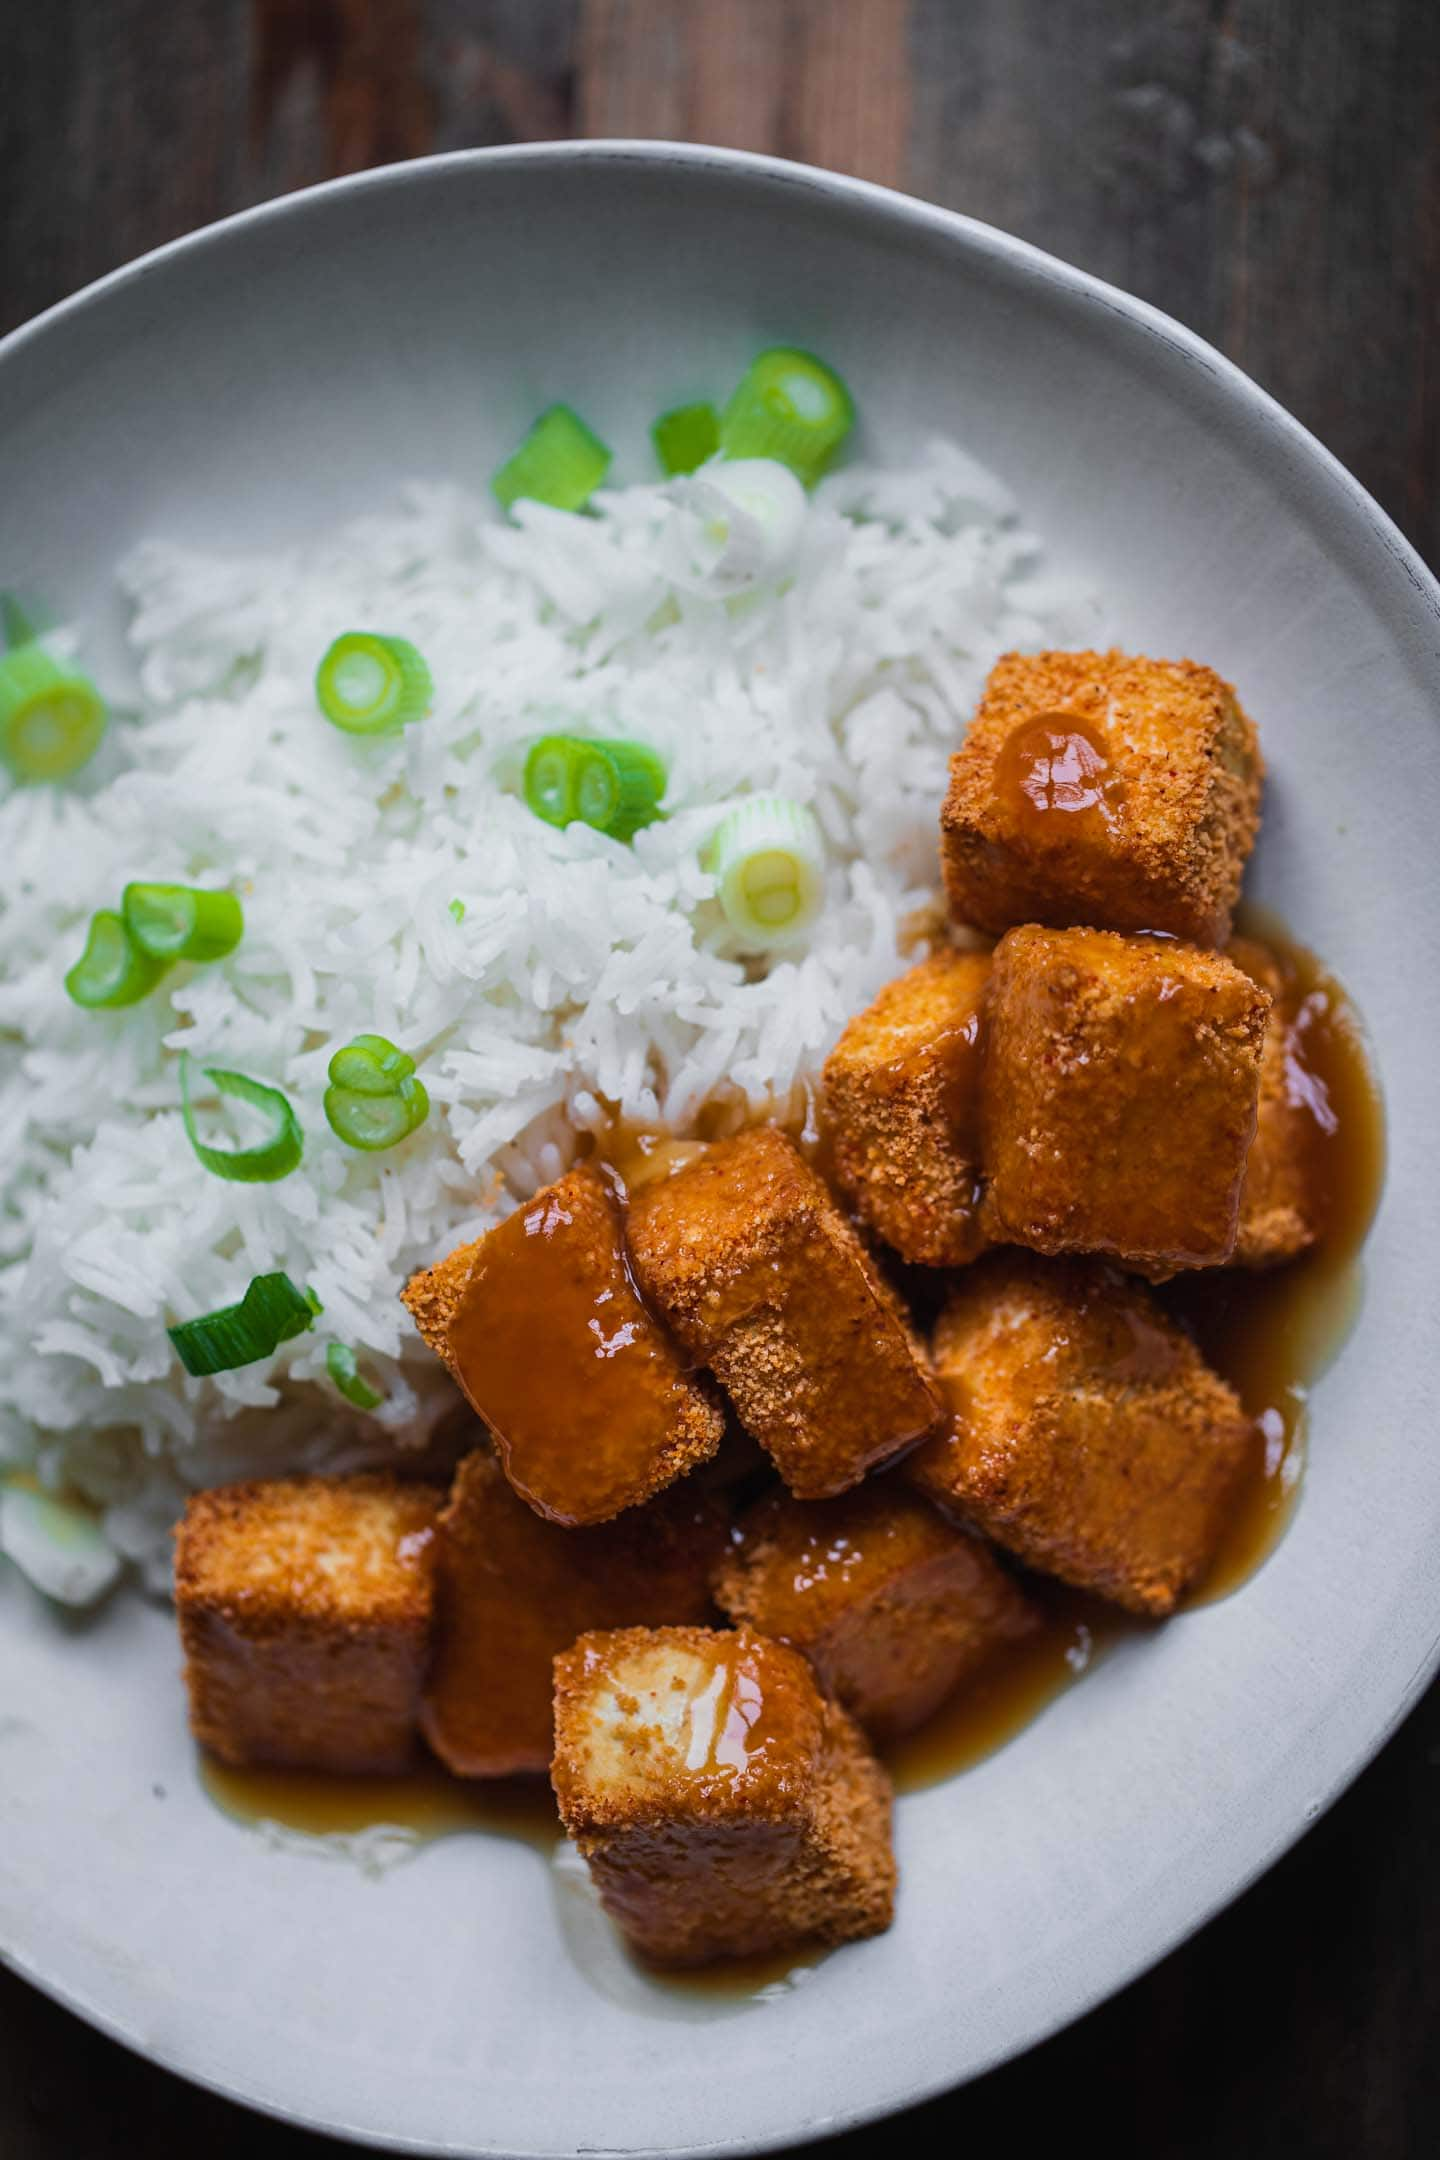 Baked tofu cubes with rice and sweet and sour sauce